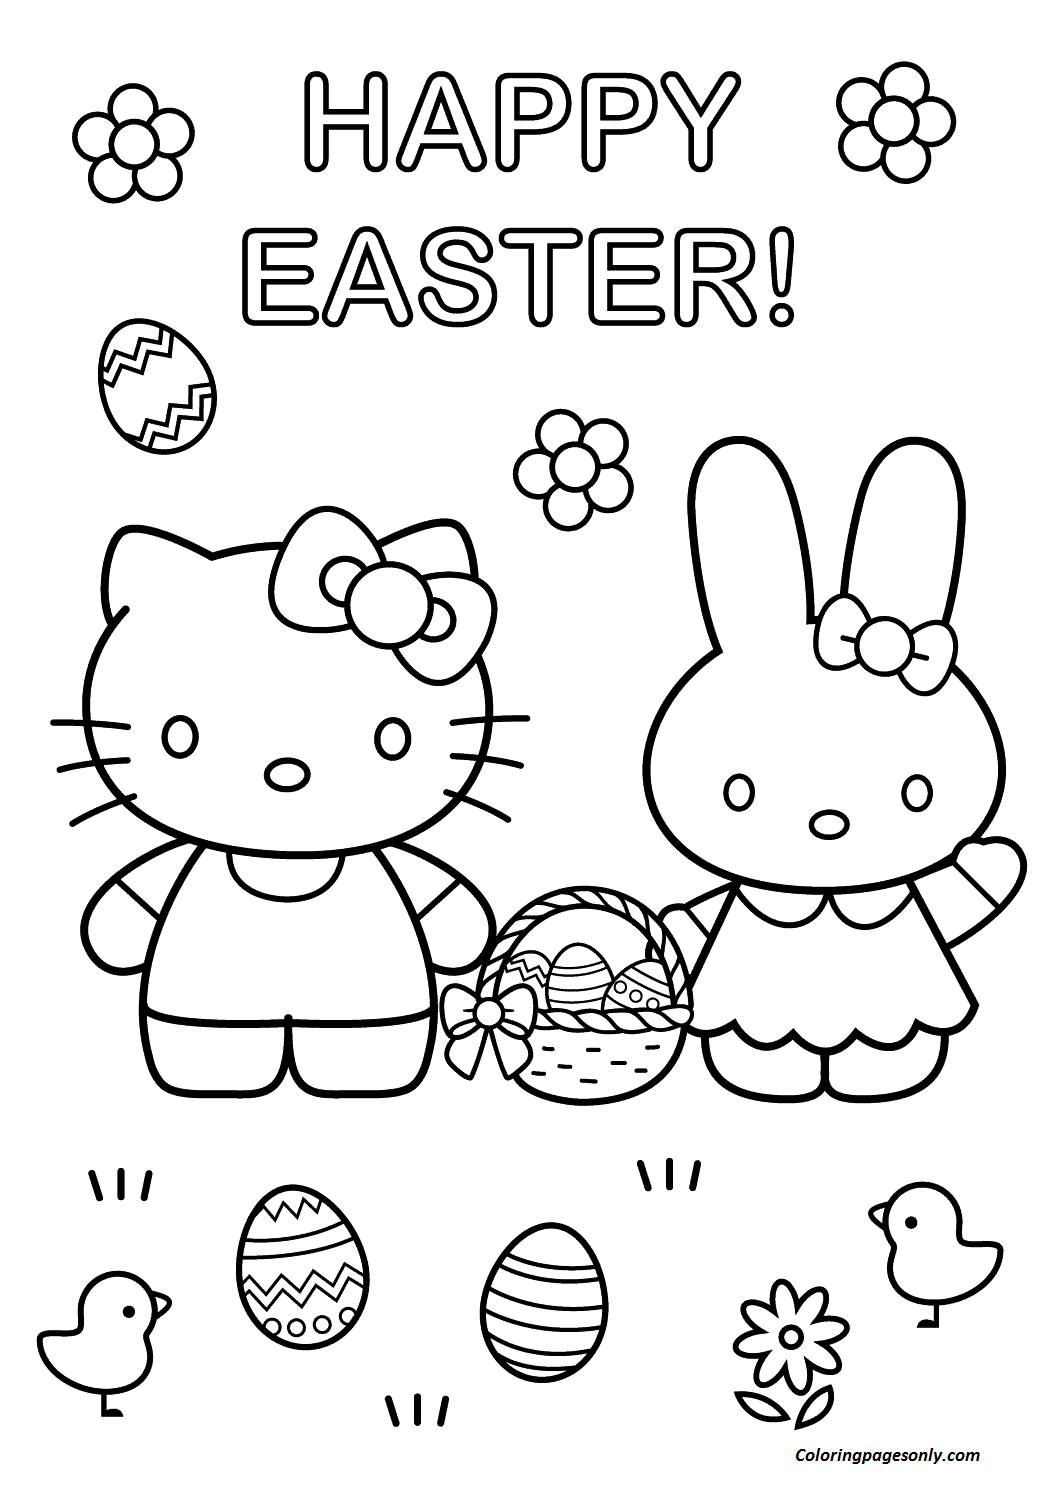 Hello Kitty With Easter Bunny Coloring Page Coloring Page Free Coloring Pages Online